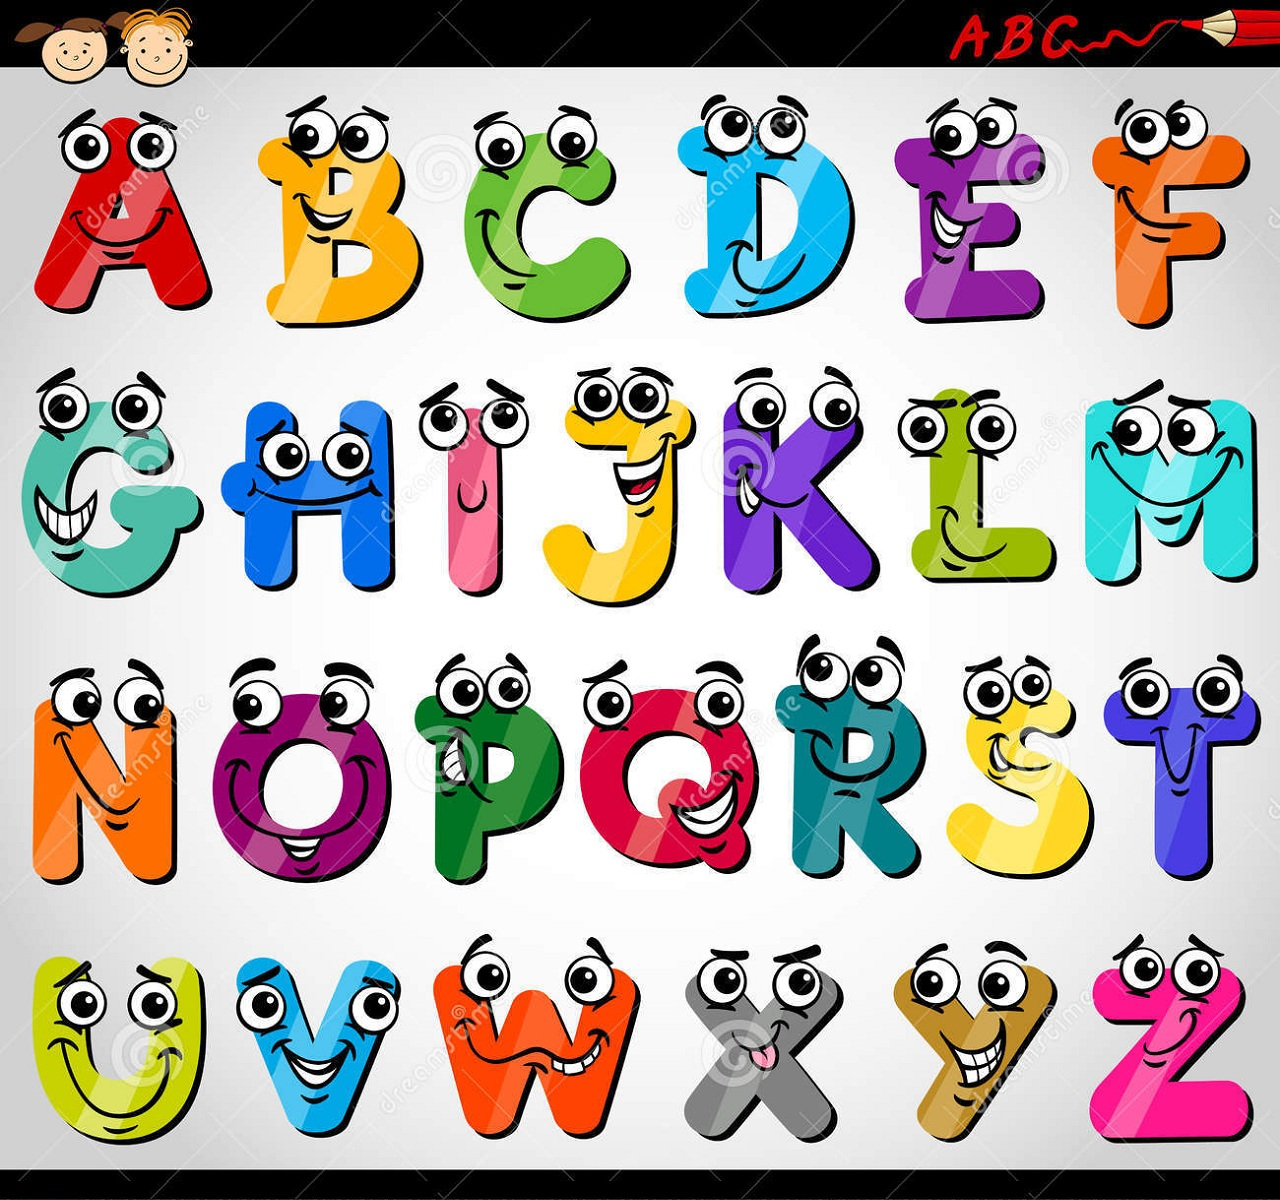 Capital Letters Alphabet For Kids